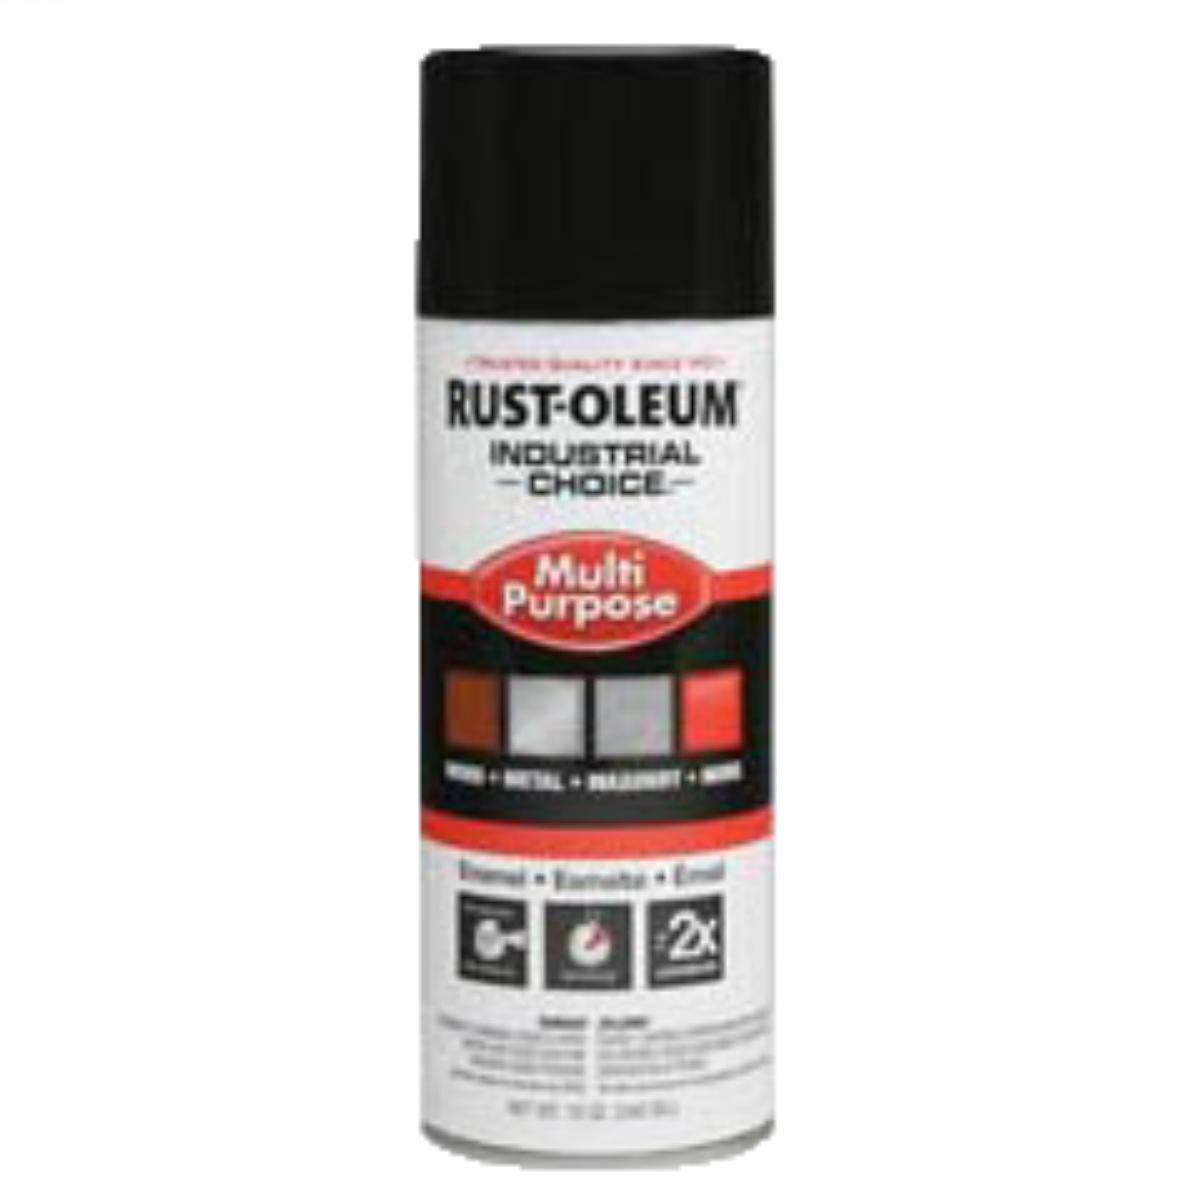 Rust-Oleum® Industrial Choice® 1679830 12 oz Aerosol Can Solvent Based Multi-Purpose Alkyd Enamel Spray Paint, Gloss Black